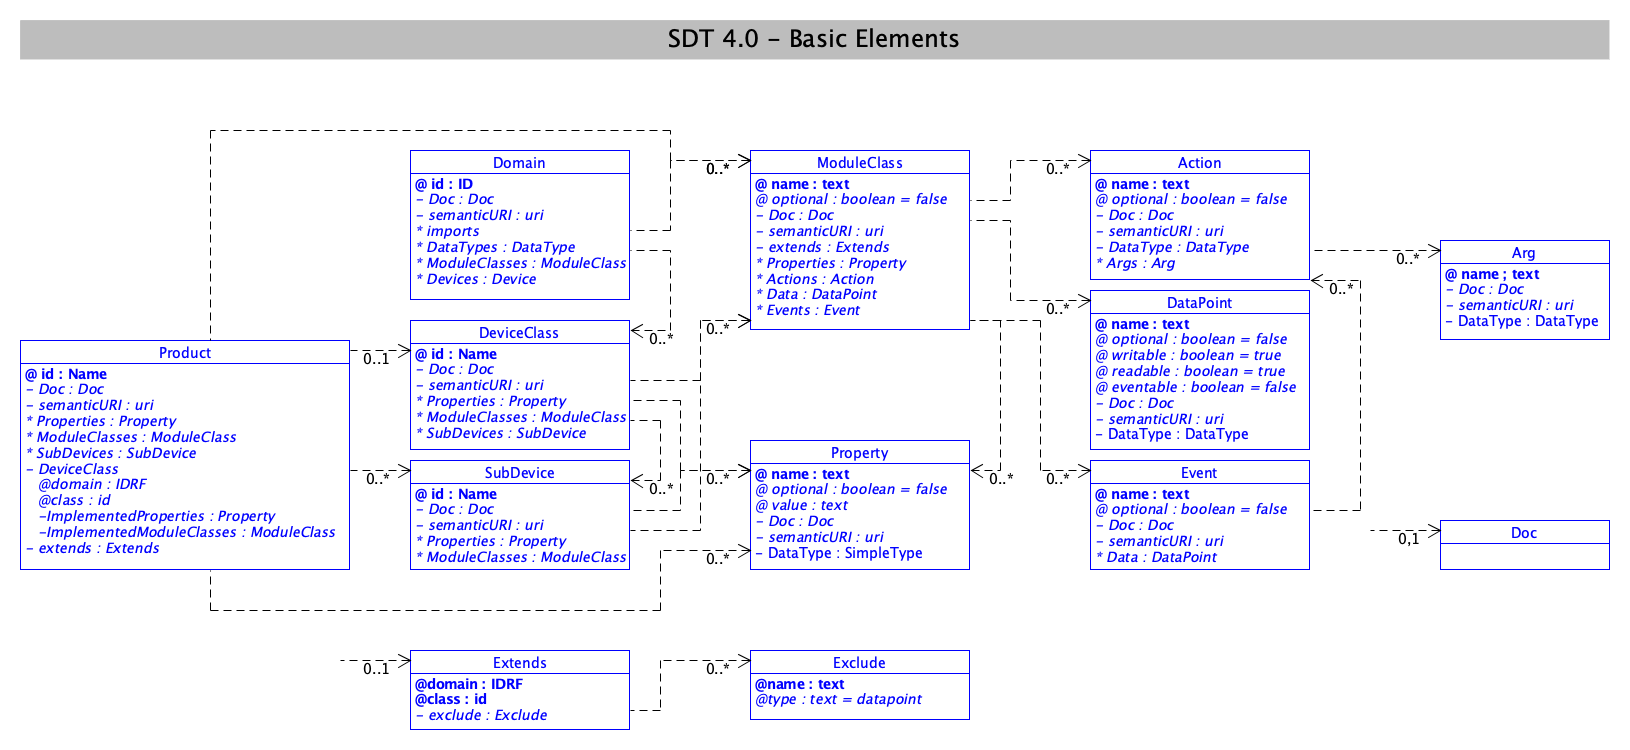 SDT/schema4.0/docs/images/SDT_UML_Basic_Elements.png